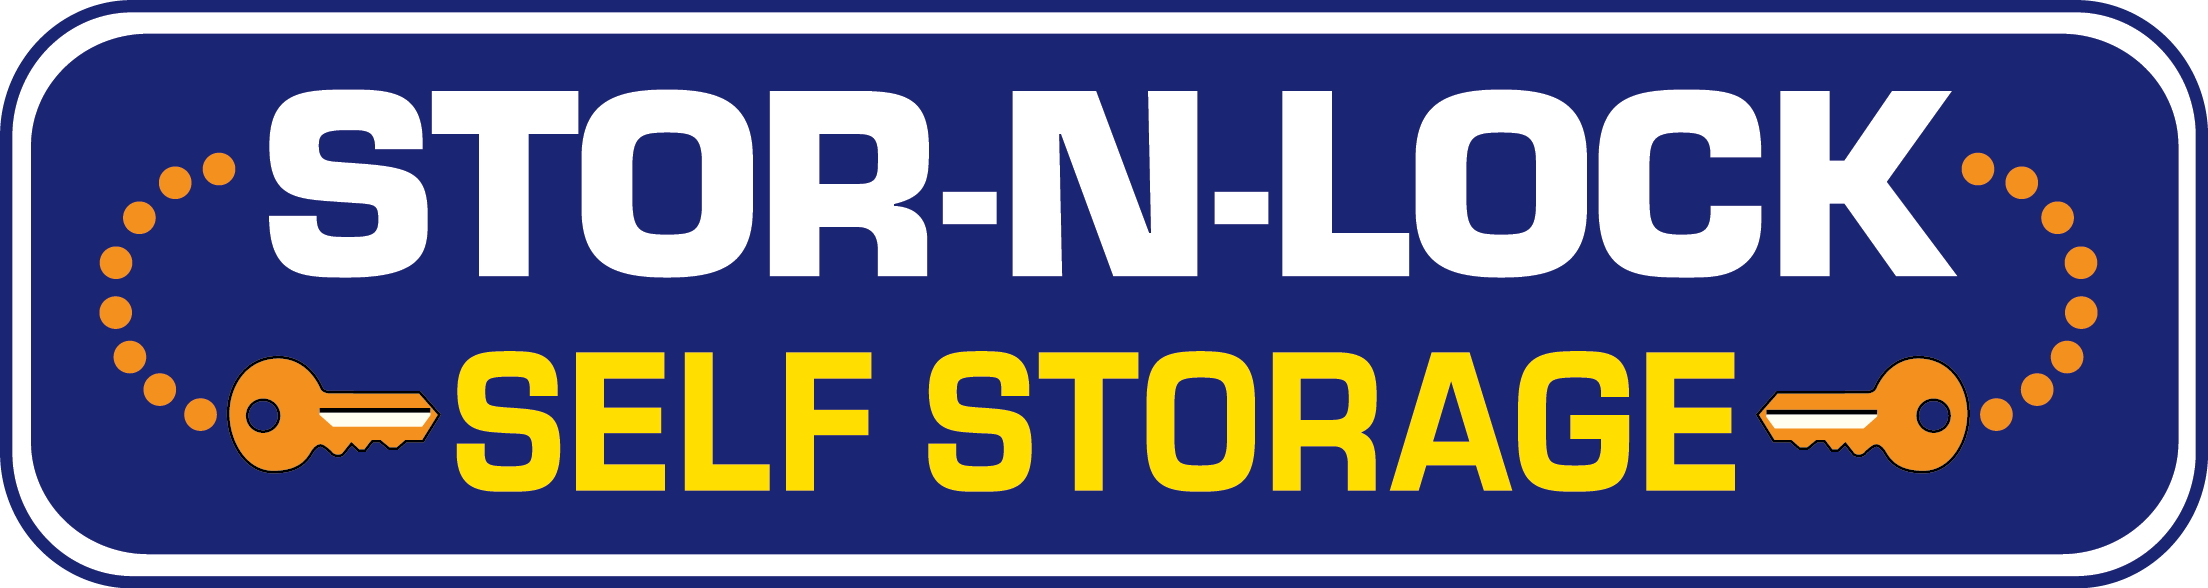 STOR-N-LOCK Self Storage Logo